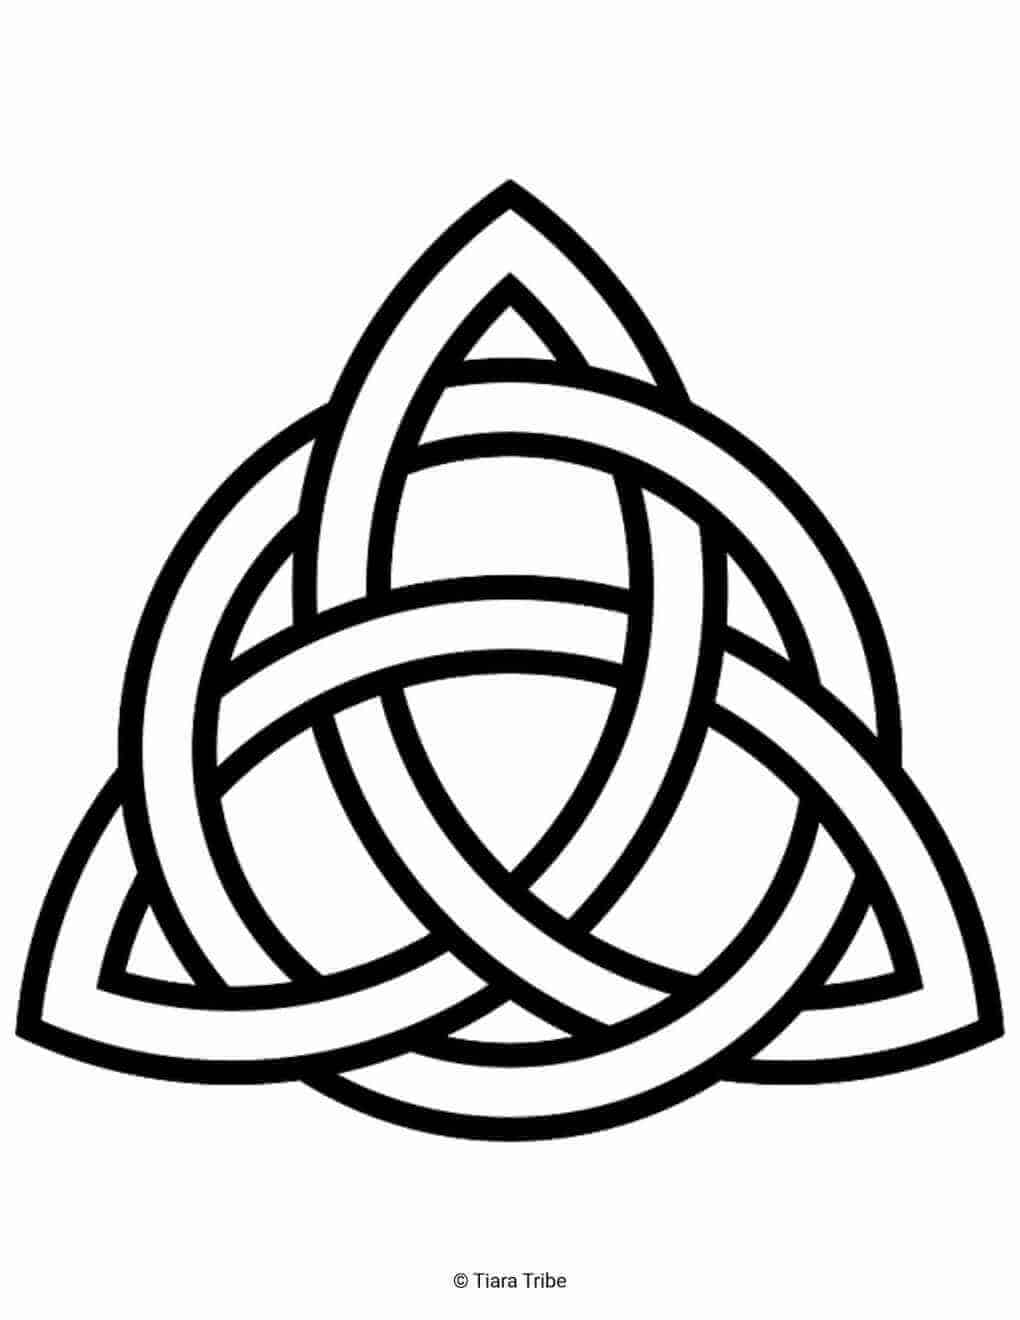 Triangular Celtic Rope Design Coloring Page